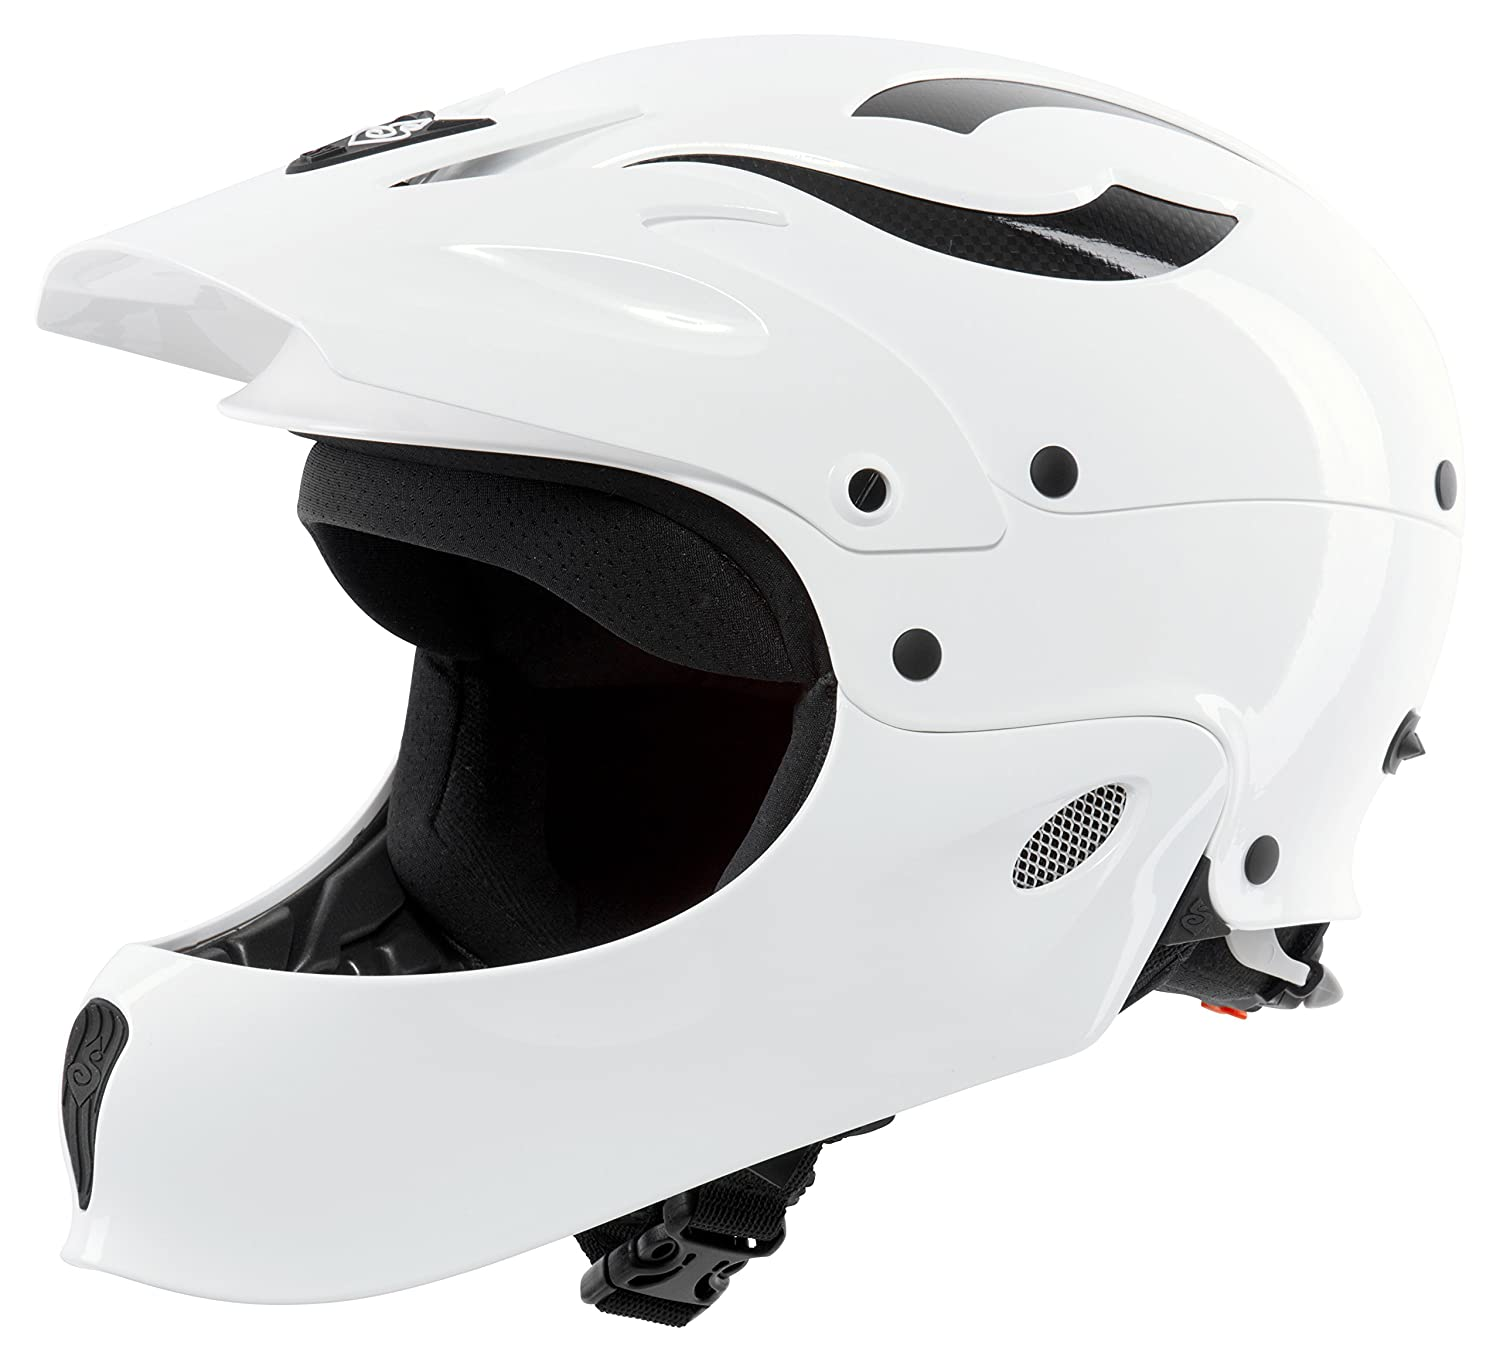 Amazon.com : Sweet Protection Rocker Fullface Paddle Helmet : Sports & Outdoors